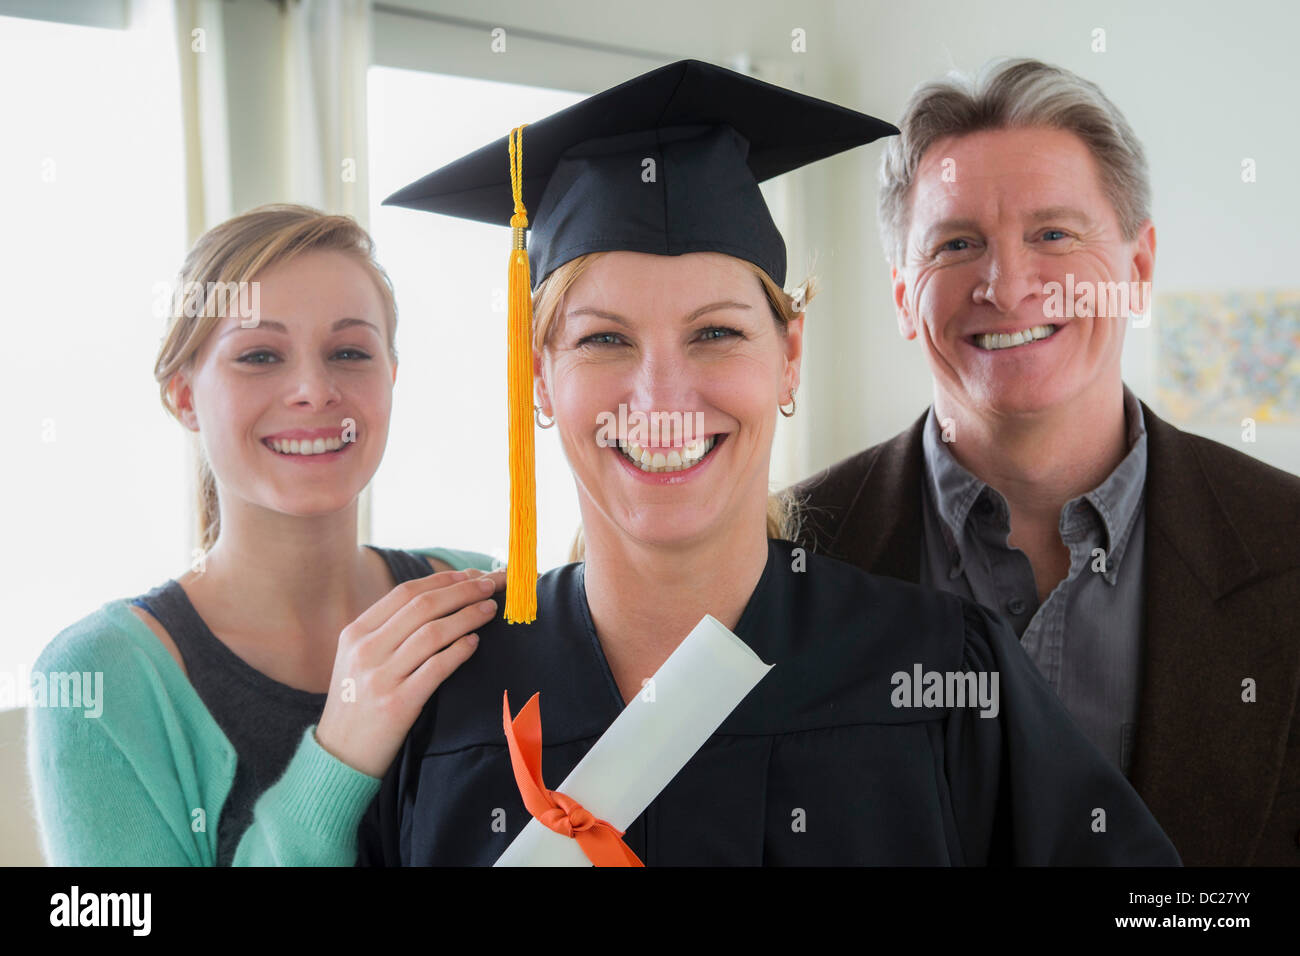 Mother wearing mortarboard with daughter and husband - Stock Image